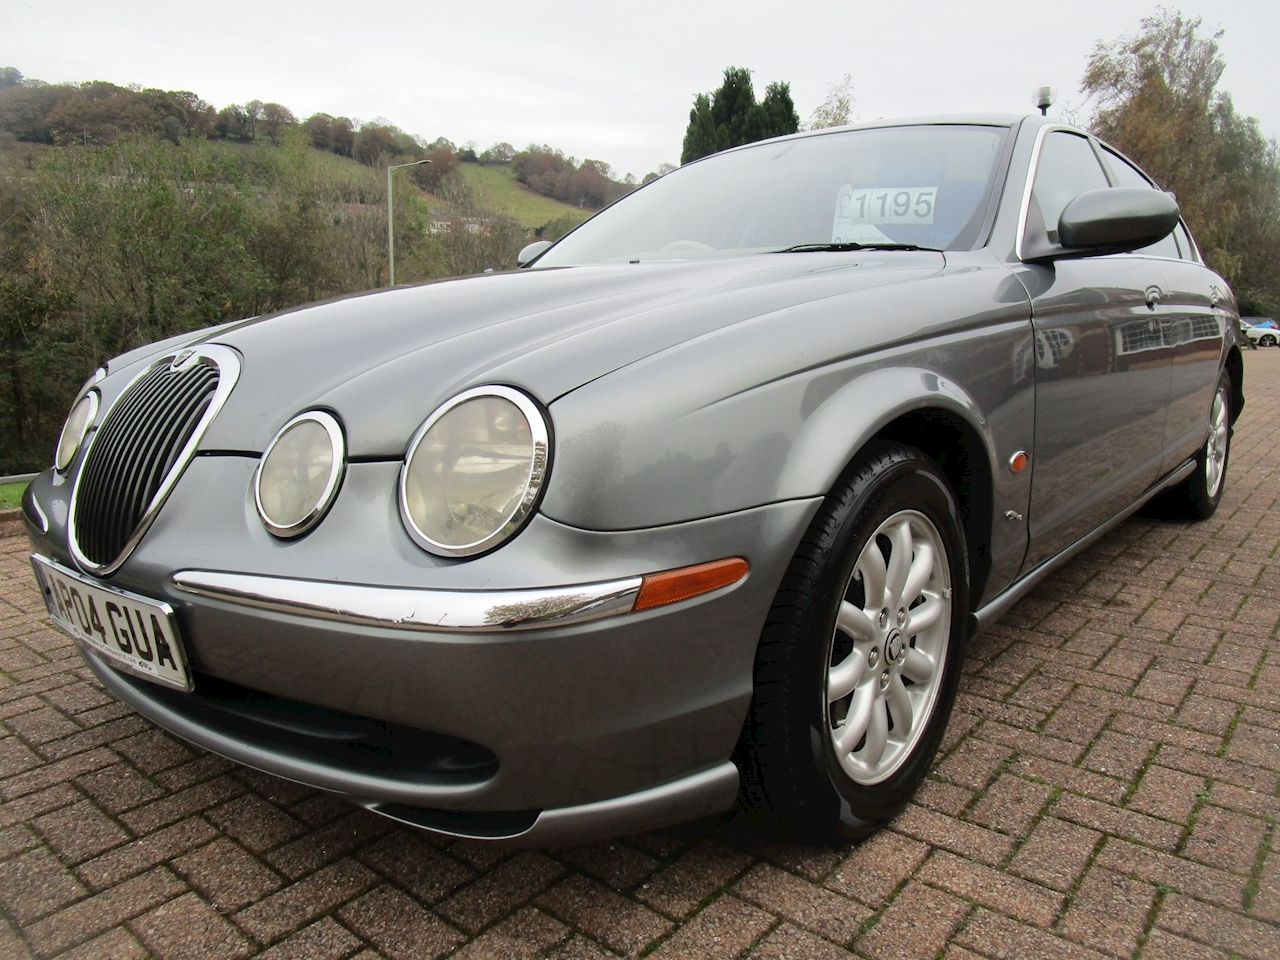 S-Type V6 Saloon 2.5 Automatic Petrol